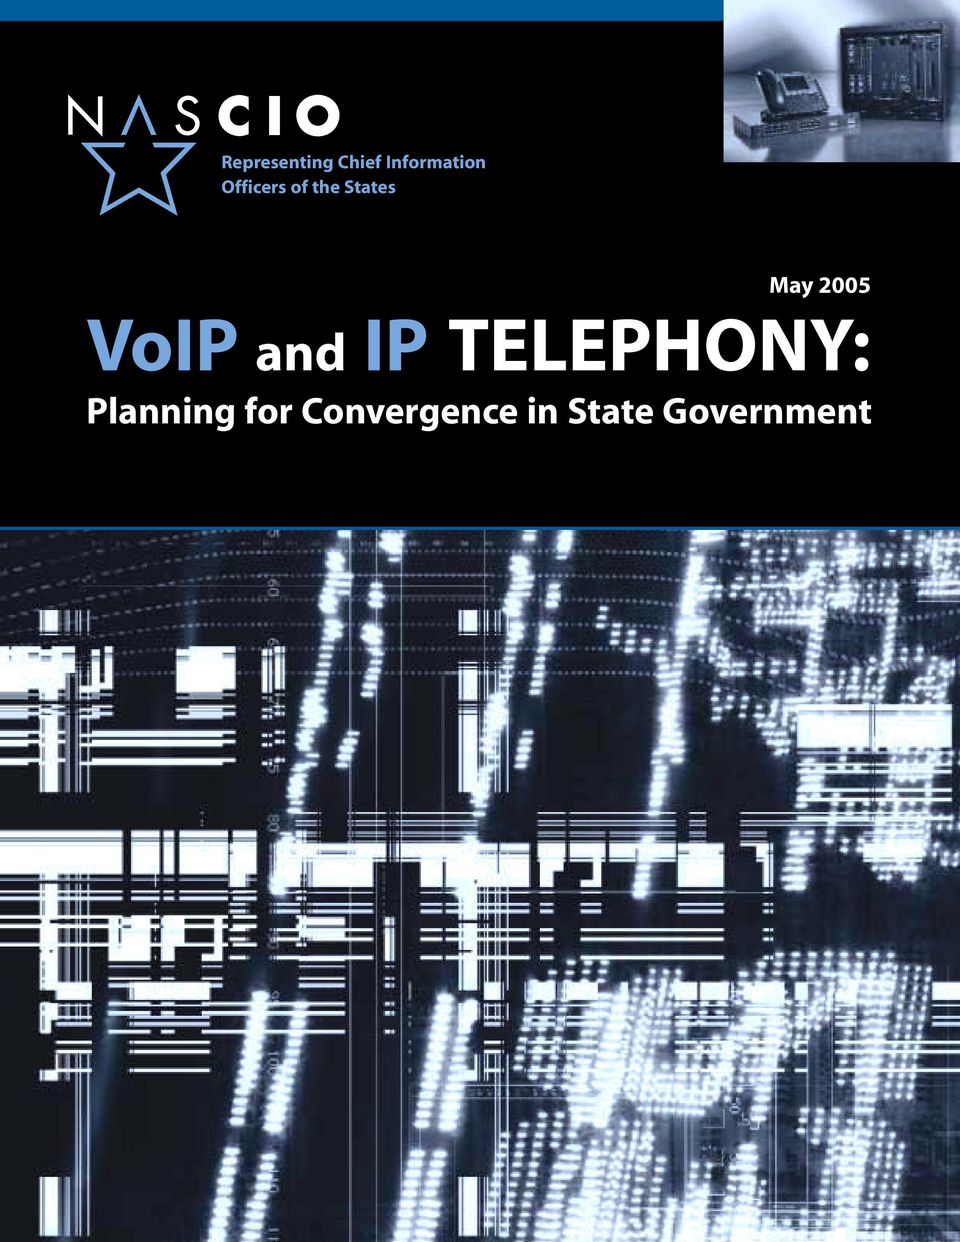 VoIP and IP TELEPHONY: Planning